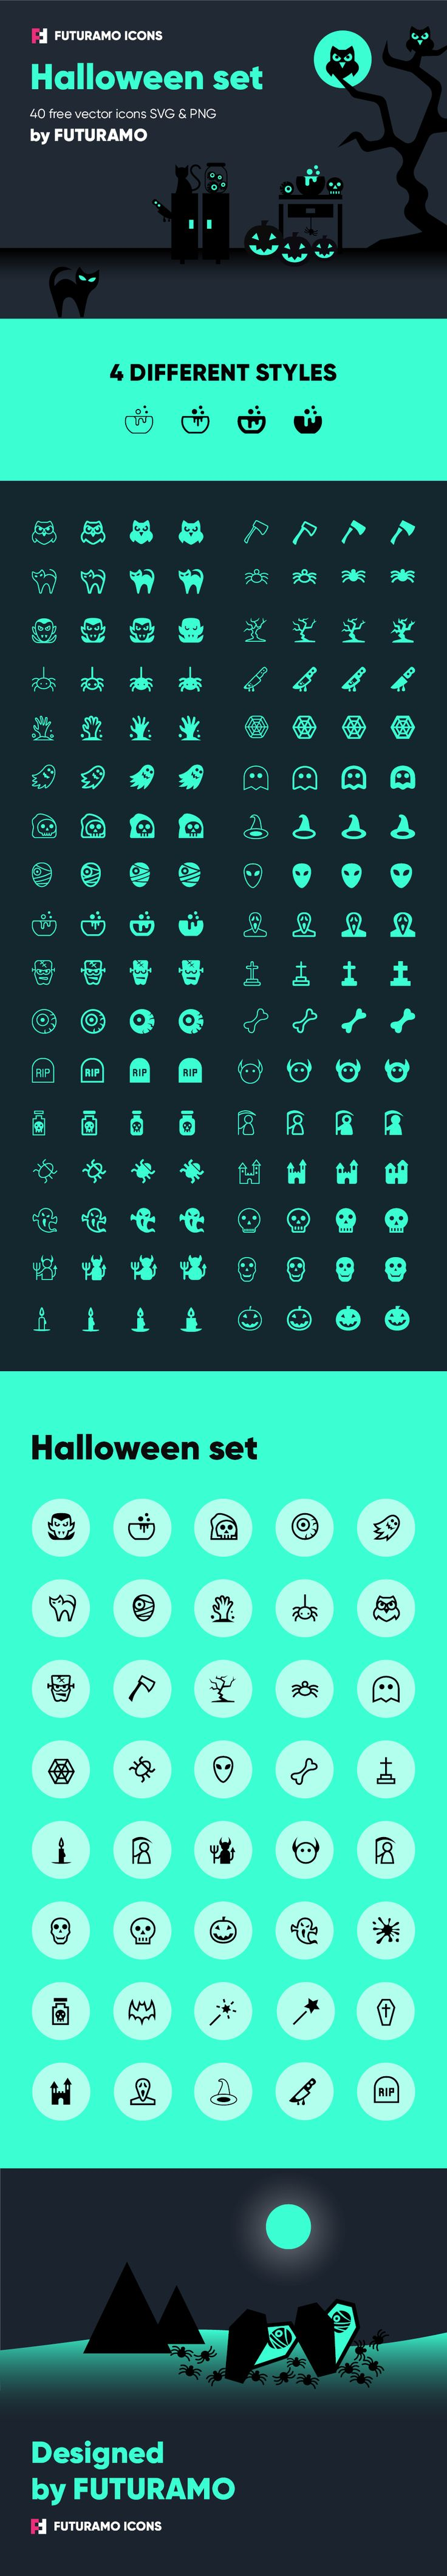 New Halloween icons are here! #halloween #halloween2017 #icondesign  #icons #futuramo #futuramoicons #design #designideas #designinspiration